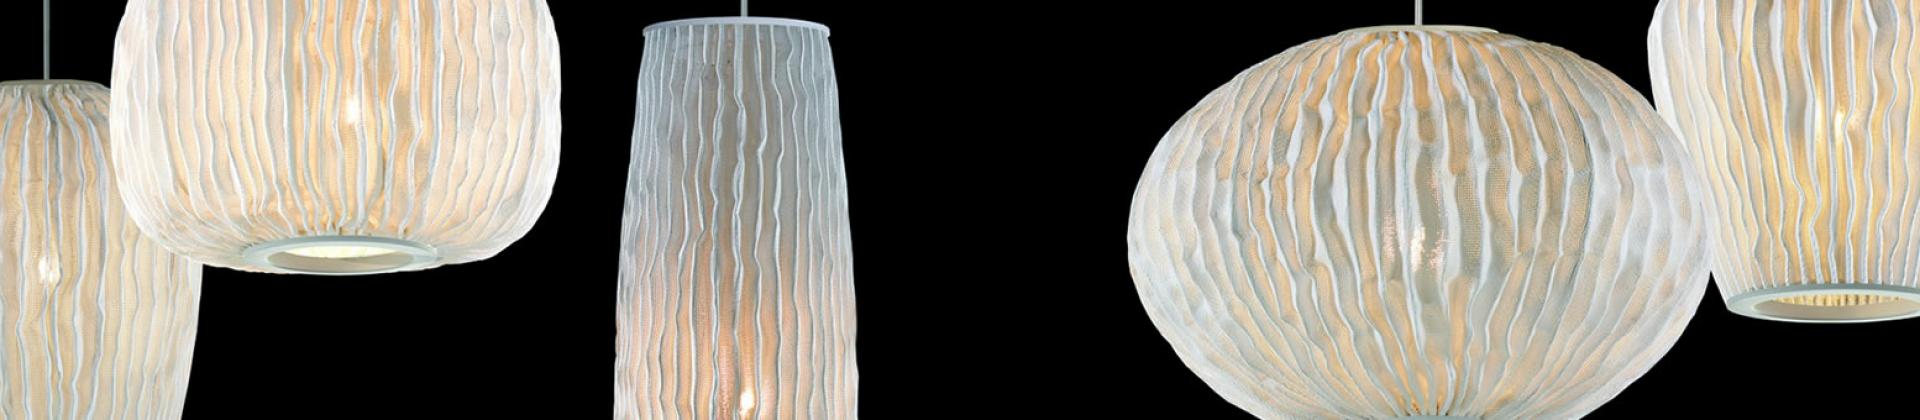 Arturo Alvarez Table Lamps - Lámparas de diseño